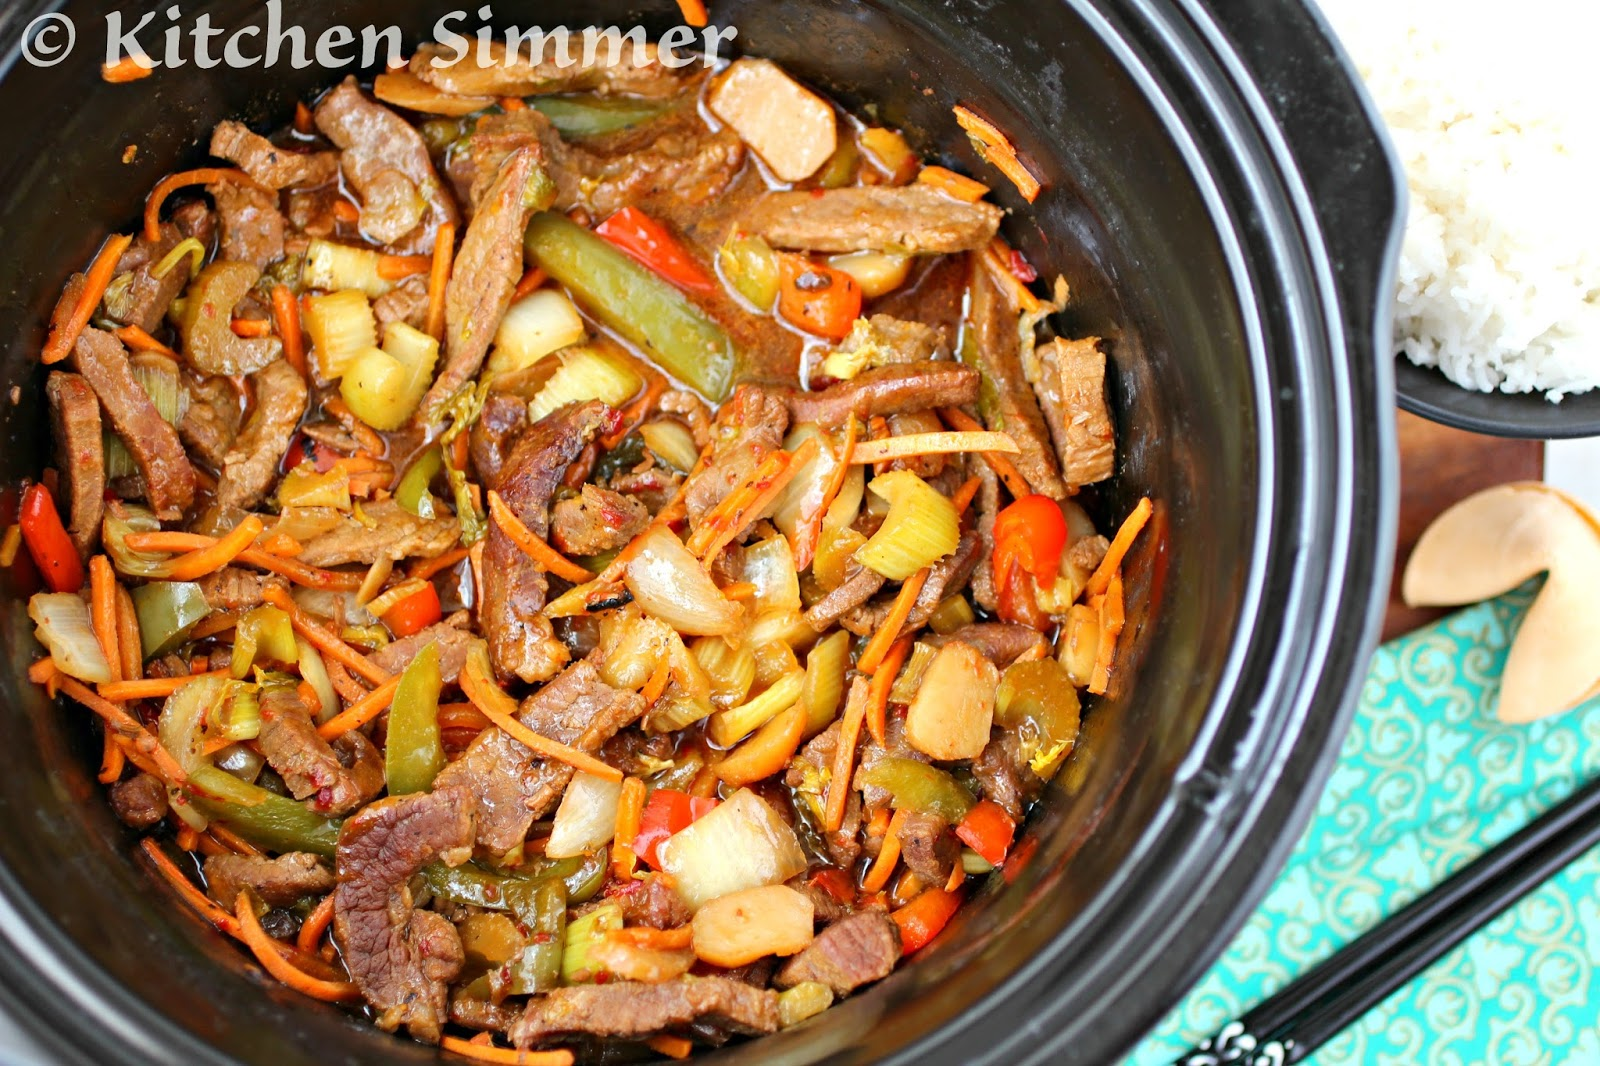 Kitchen Simmer: Slow Cooker Beef And Vegetable Stir Fry How To Cook Brown  Rice